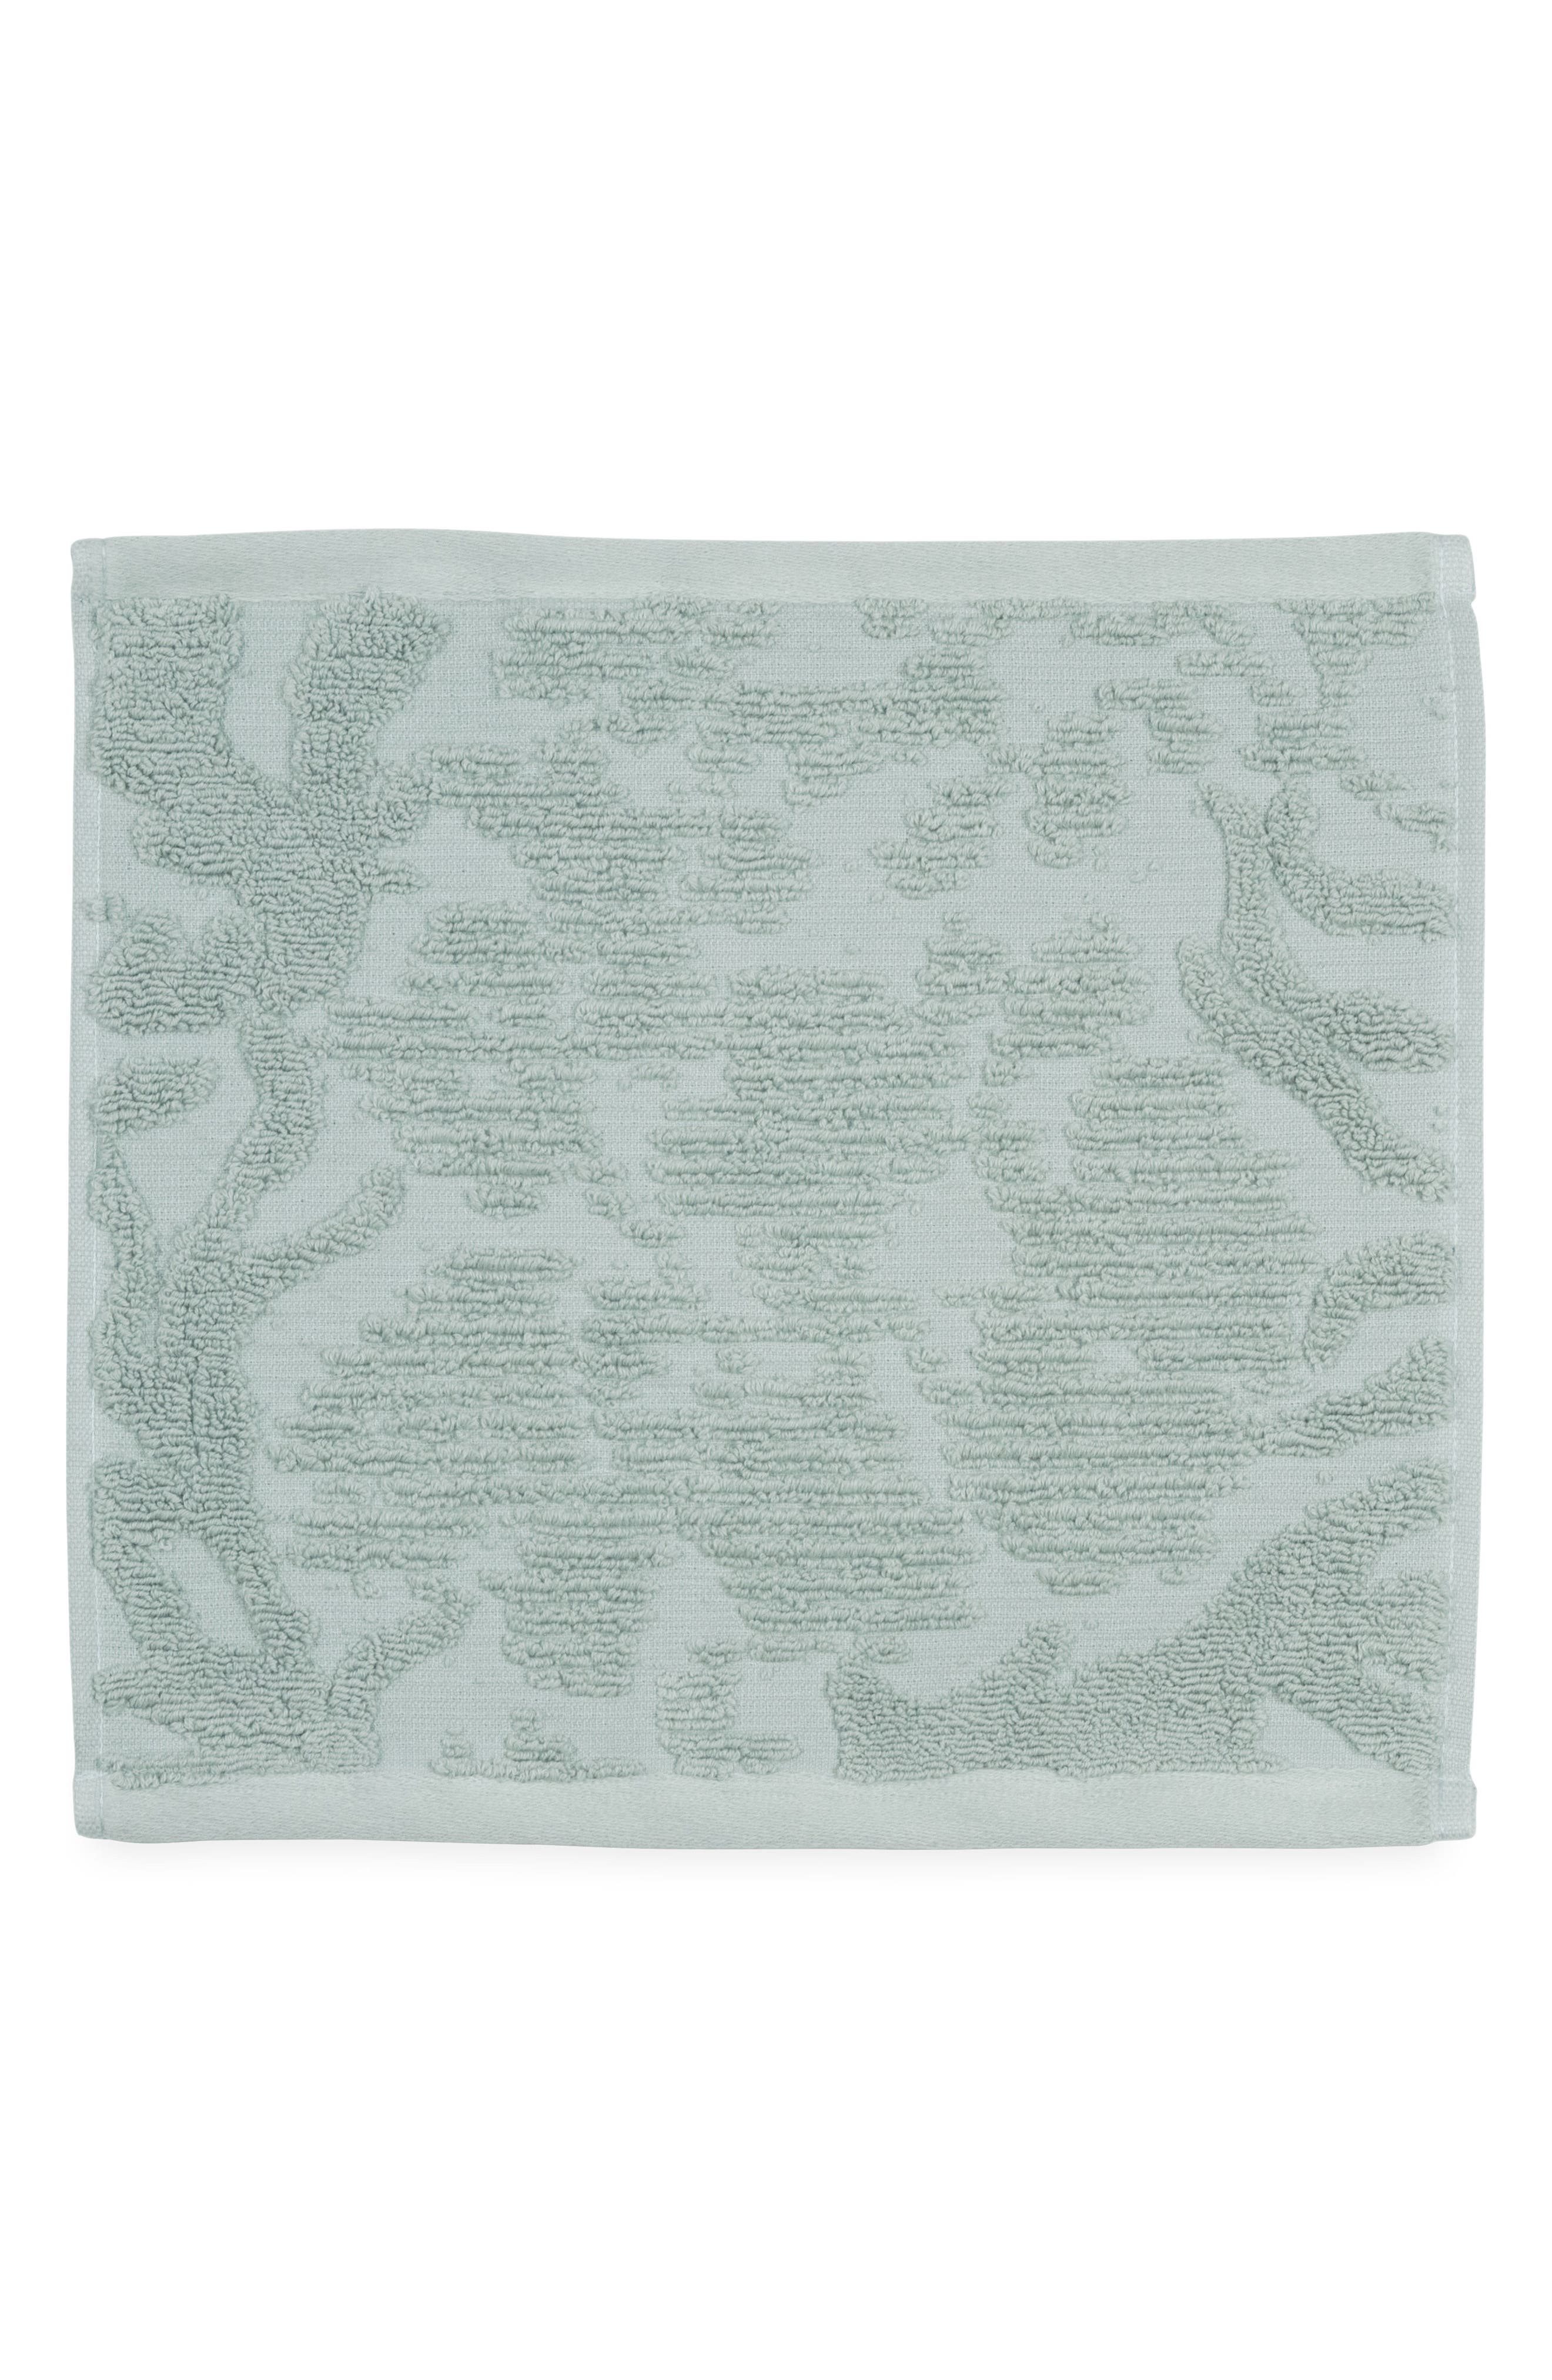 Ocean Reef Washcloth,                         Main,                         color, Seafoam